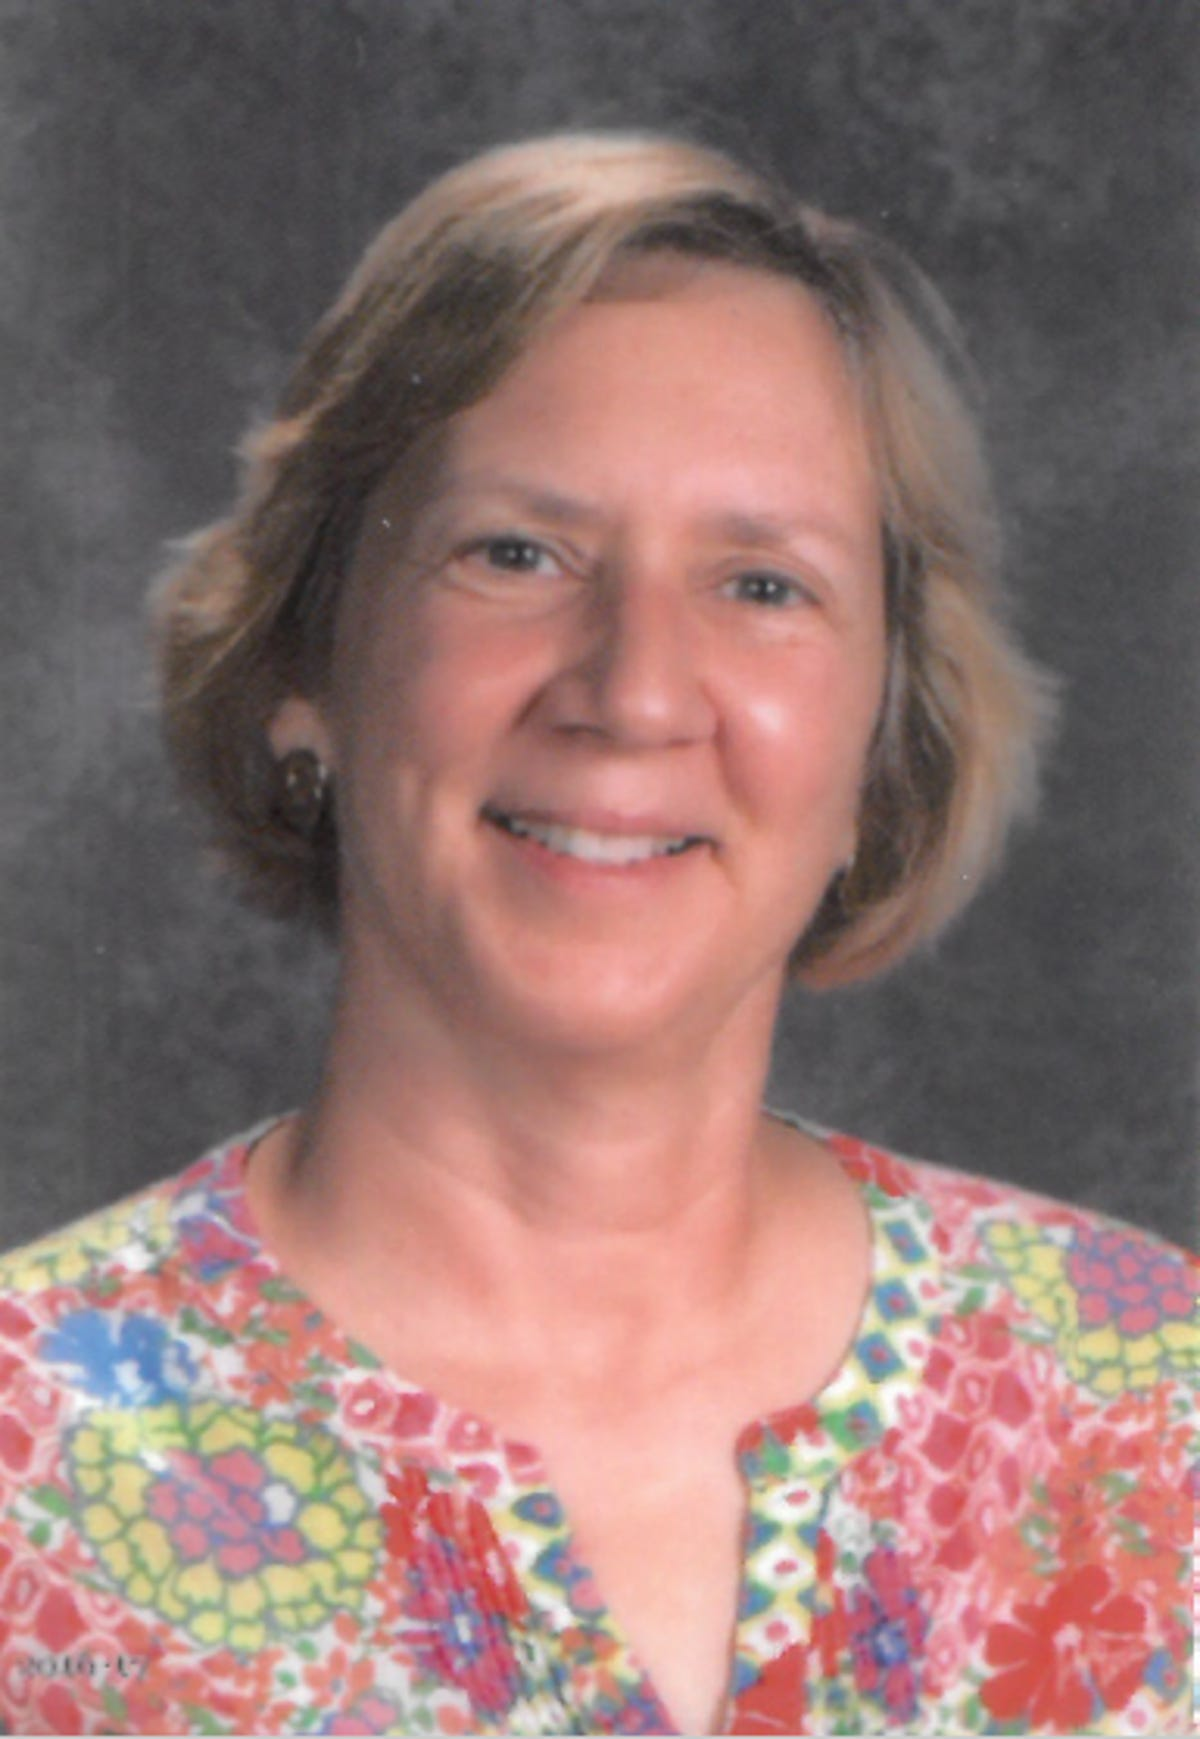 Roncalli guidance counselor files federal complaint against